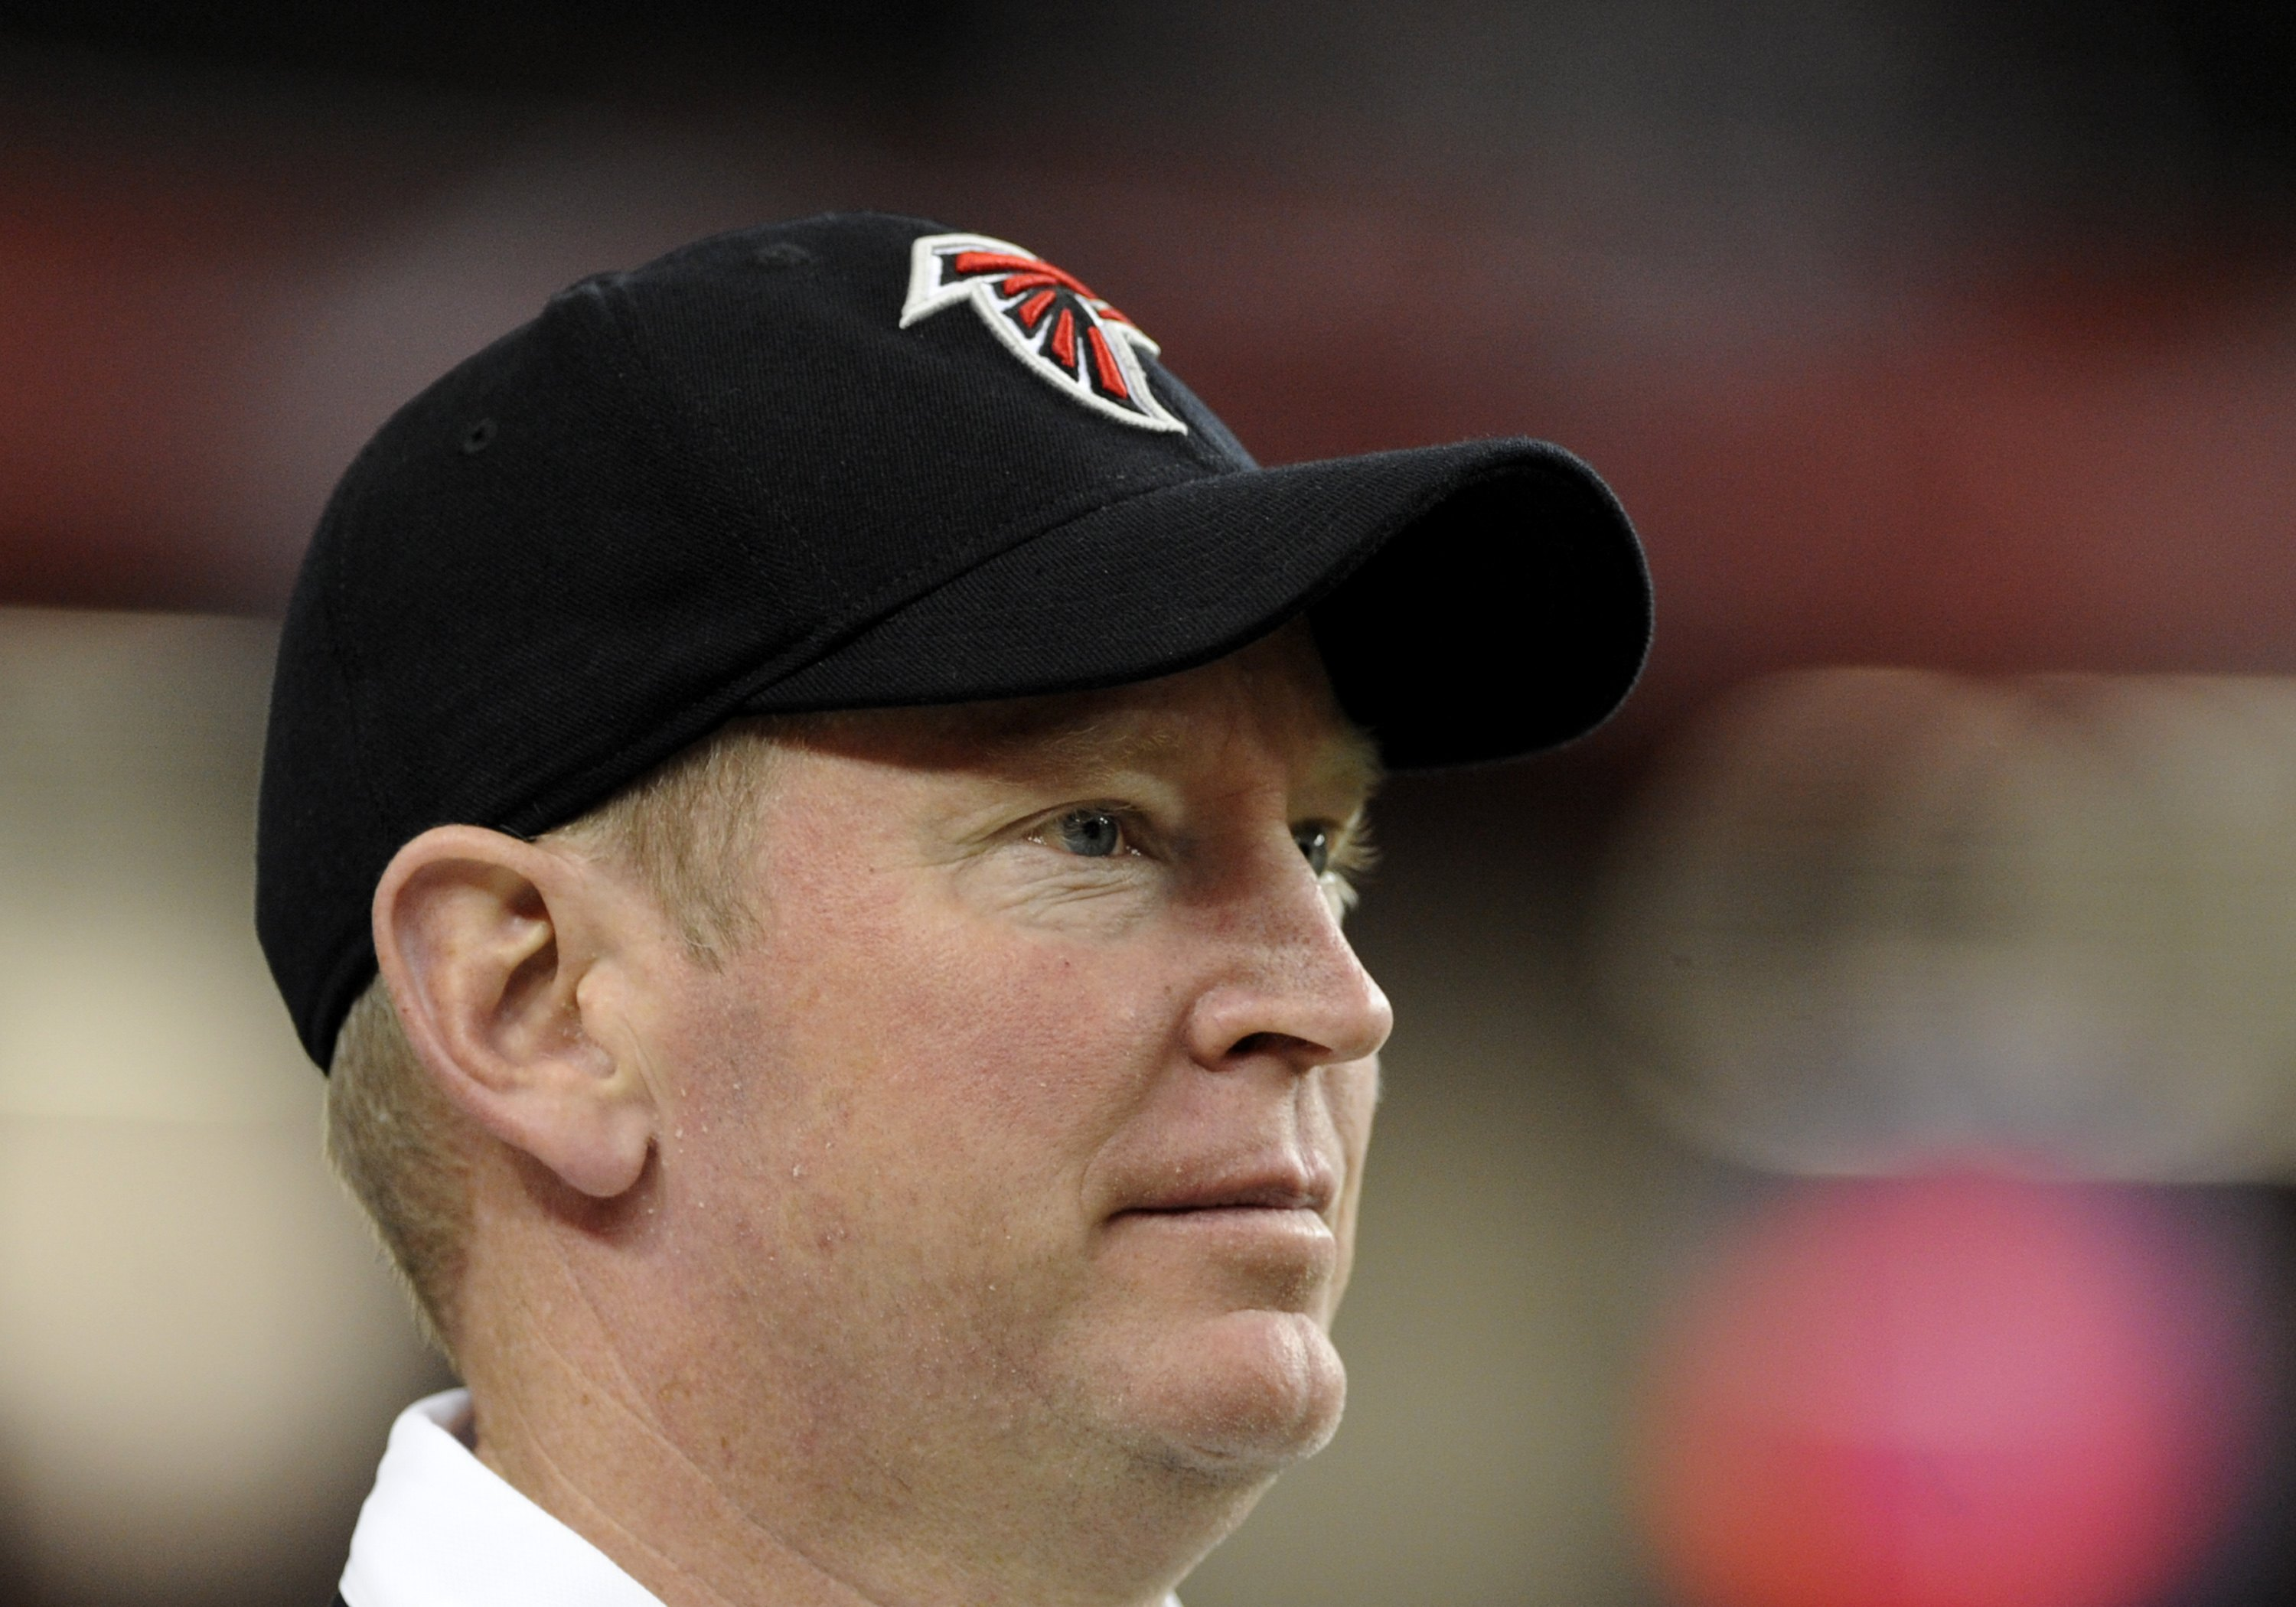 ATLANTA - NOVEMBER 23: Offensive coordinaor Mike Mularkey of the Atlanta Falcons watches play against the Carolina Panthers at the Georgia Dome on November 23, 2008 in Atlanta, Georgia.  (Photo by Al Messerschmidt/Getty Images)